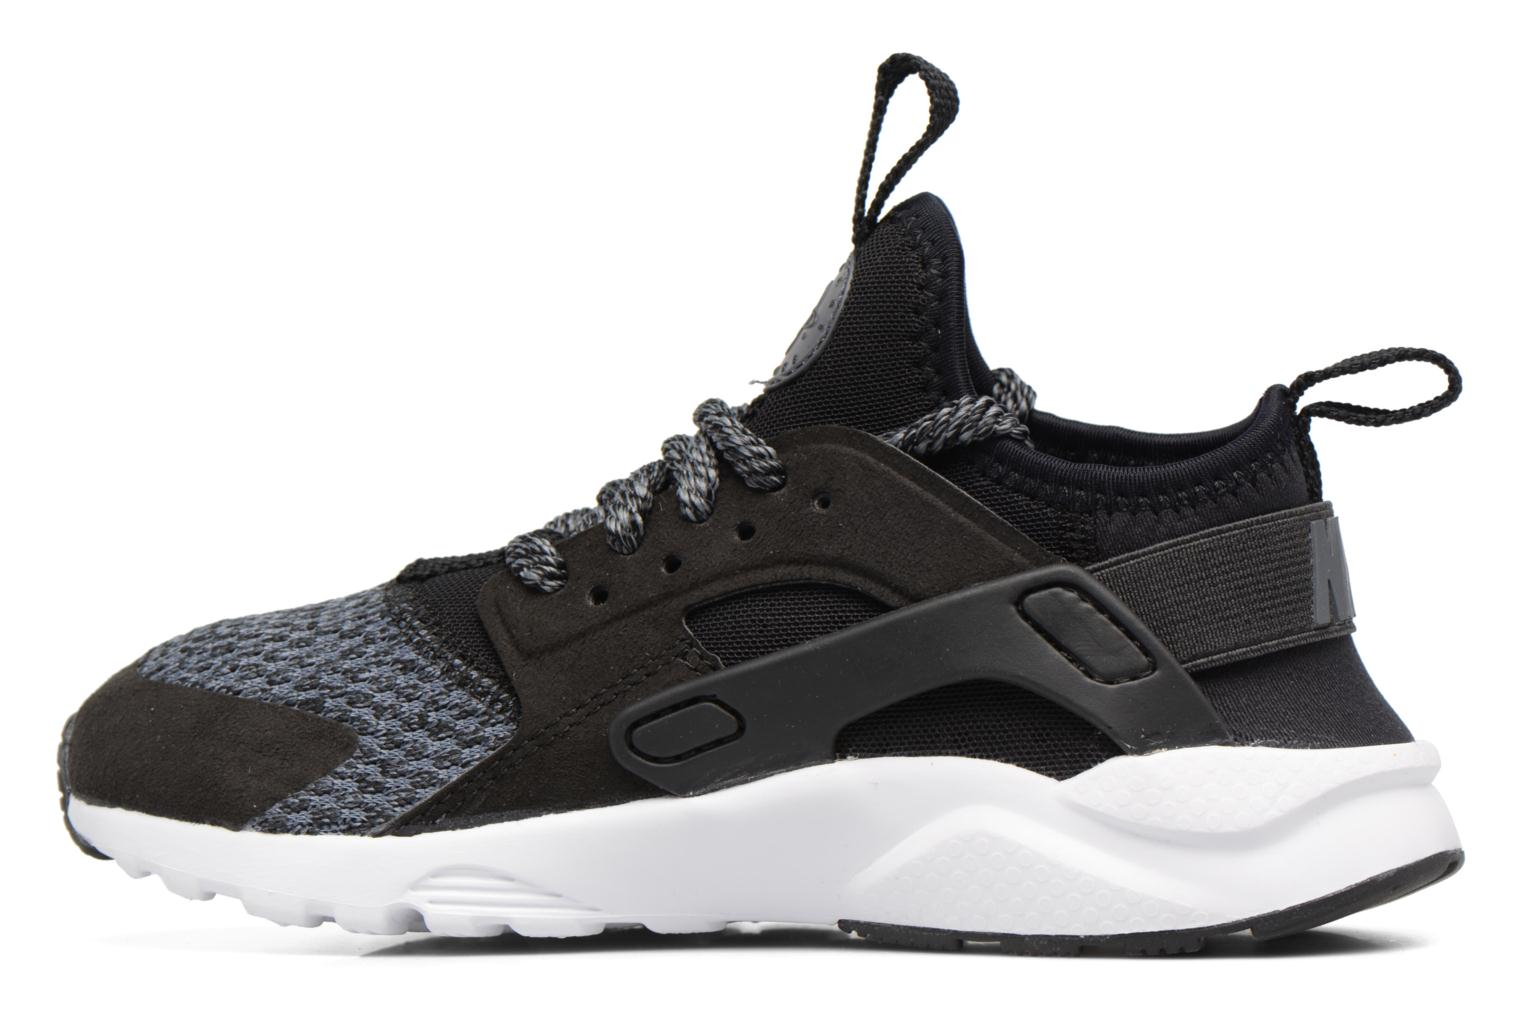 Bordeaux/Bordeaux-Tea Berry-Black Nike Huarache Run Ultra Se (Ps) (Bordeaux)